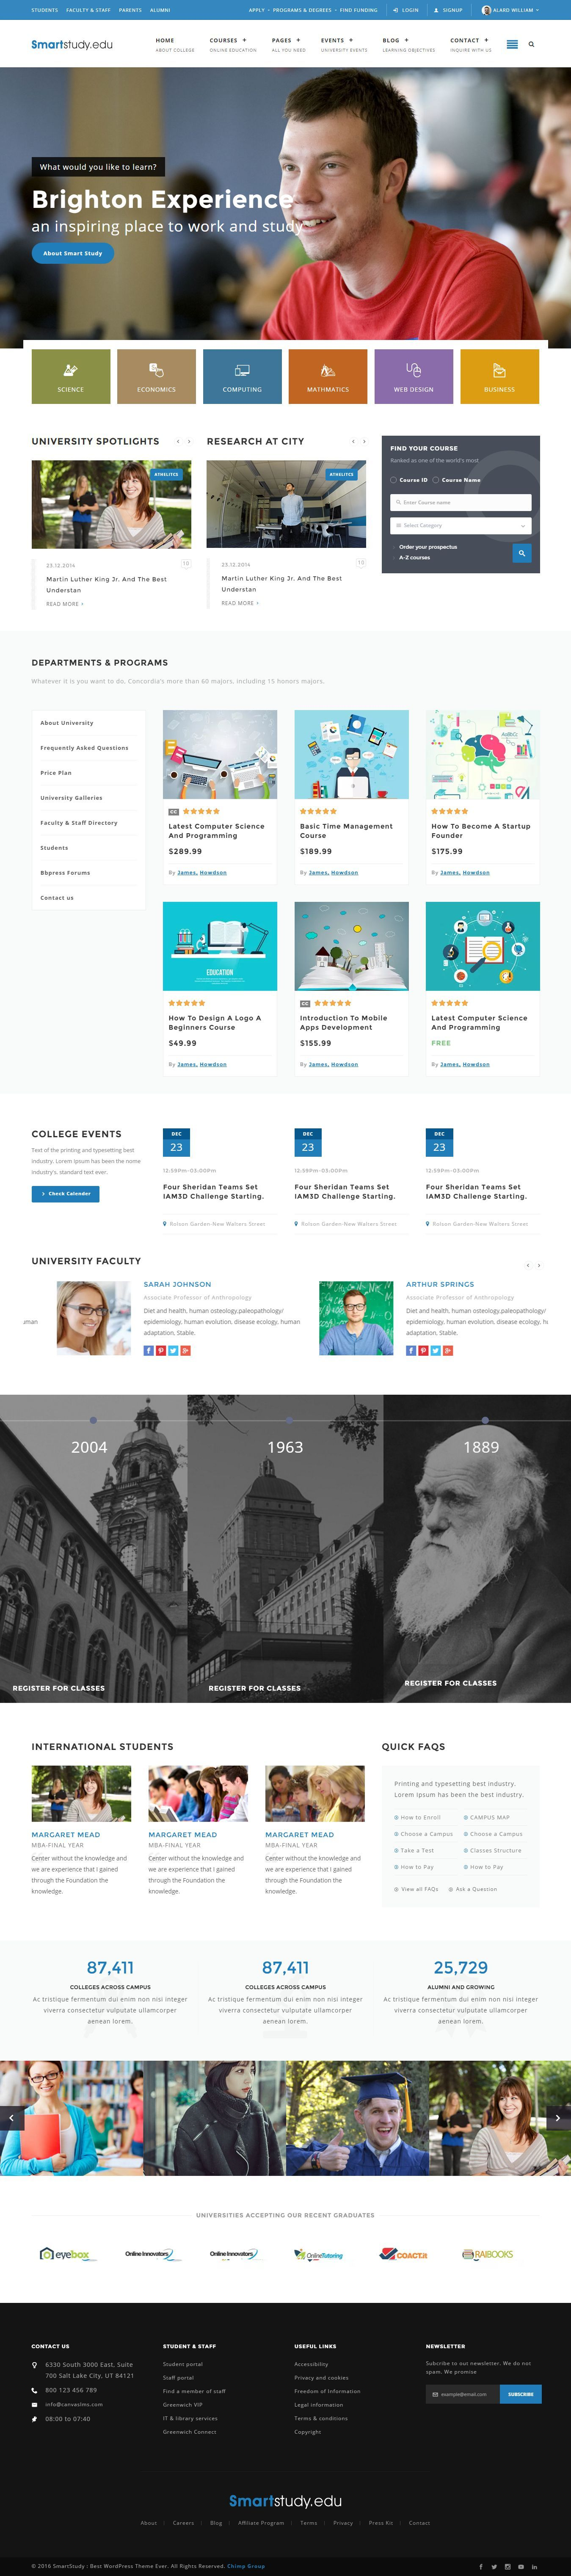 Smartstudy Responsive Education Html Template Learning Management System Education Website Templates Web Layout Design